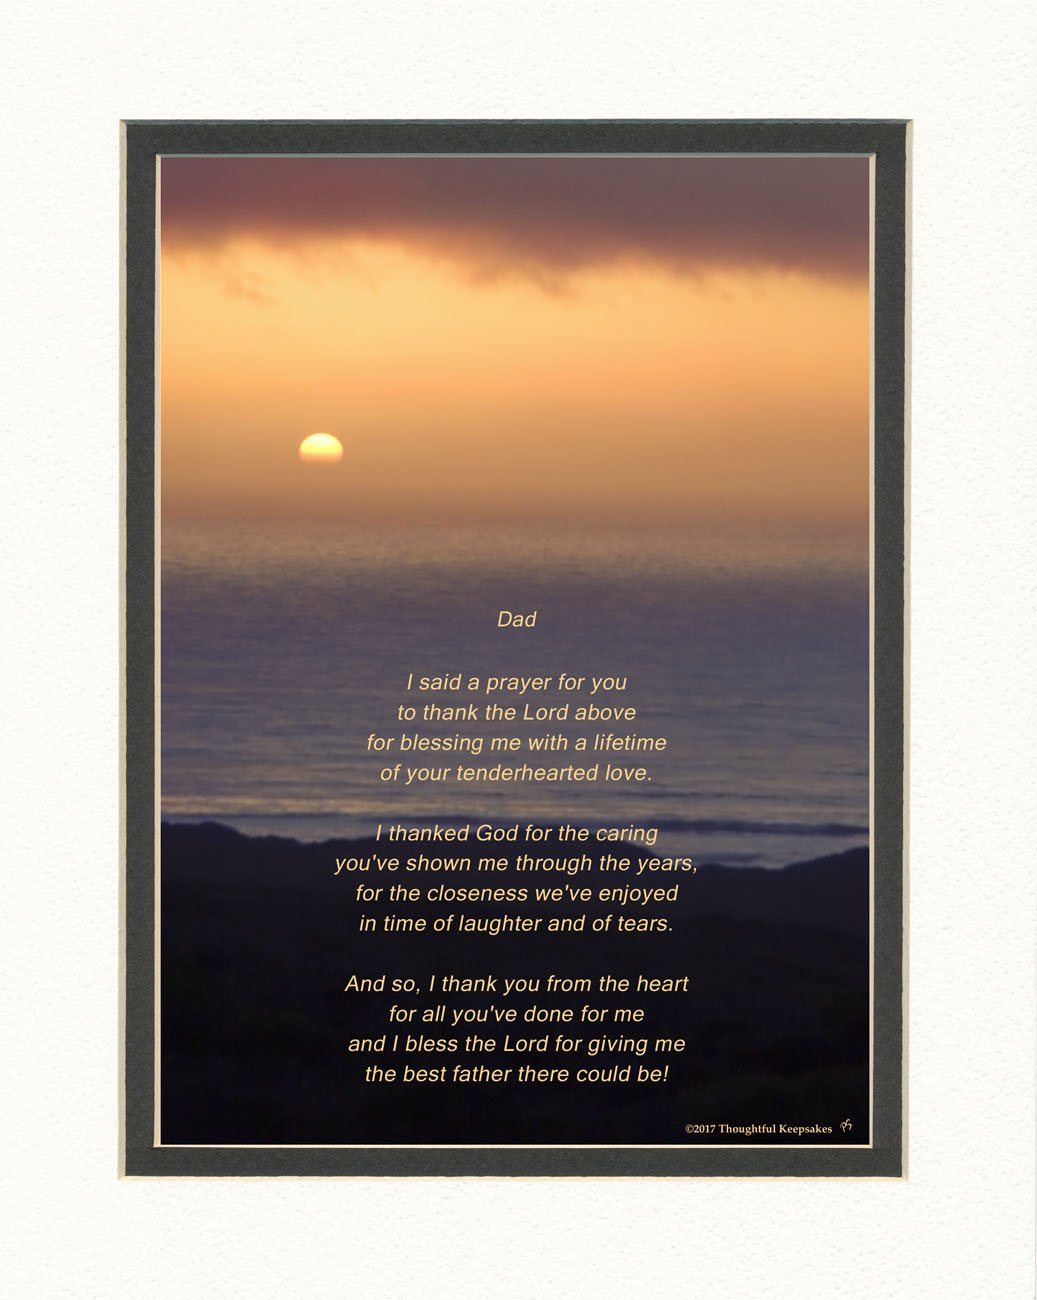 Dad Gift with''Thank You Prayer for Best Dad'' Poem. Ocean Sunset Photo, 8x10 Double Matted. Special Father Gifts for Father's Day, Birthday, Christmas, Wedding.